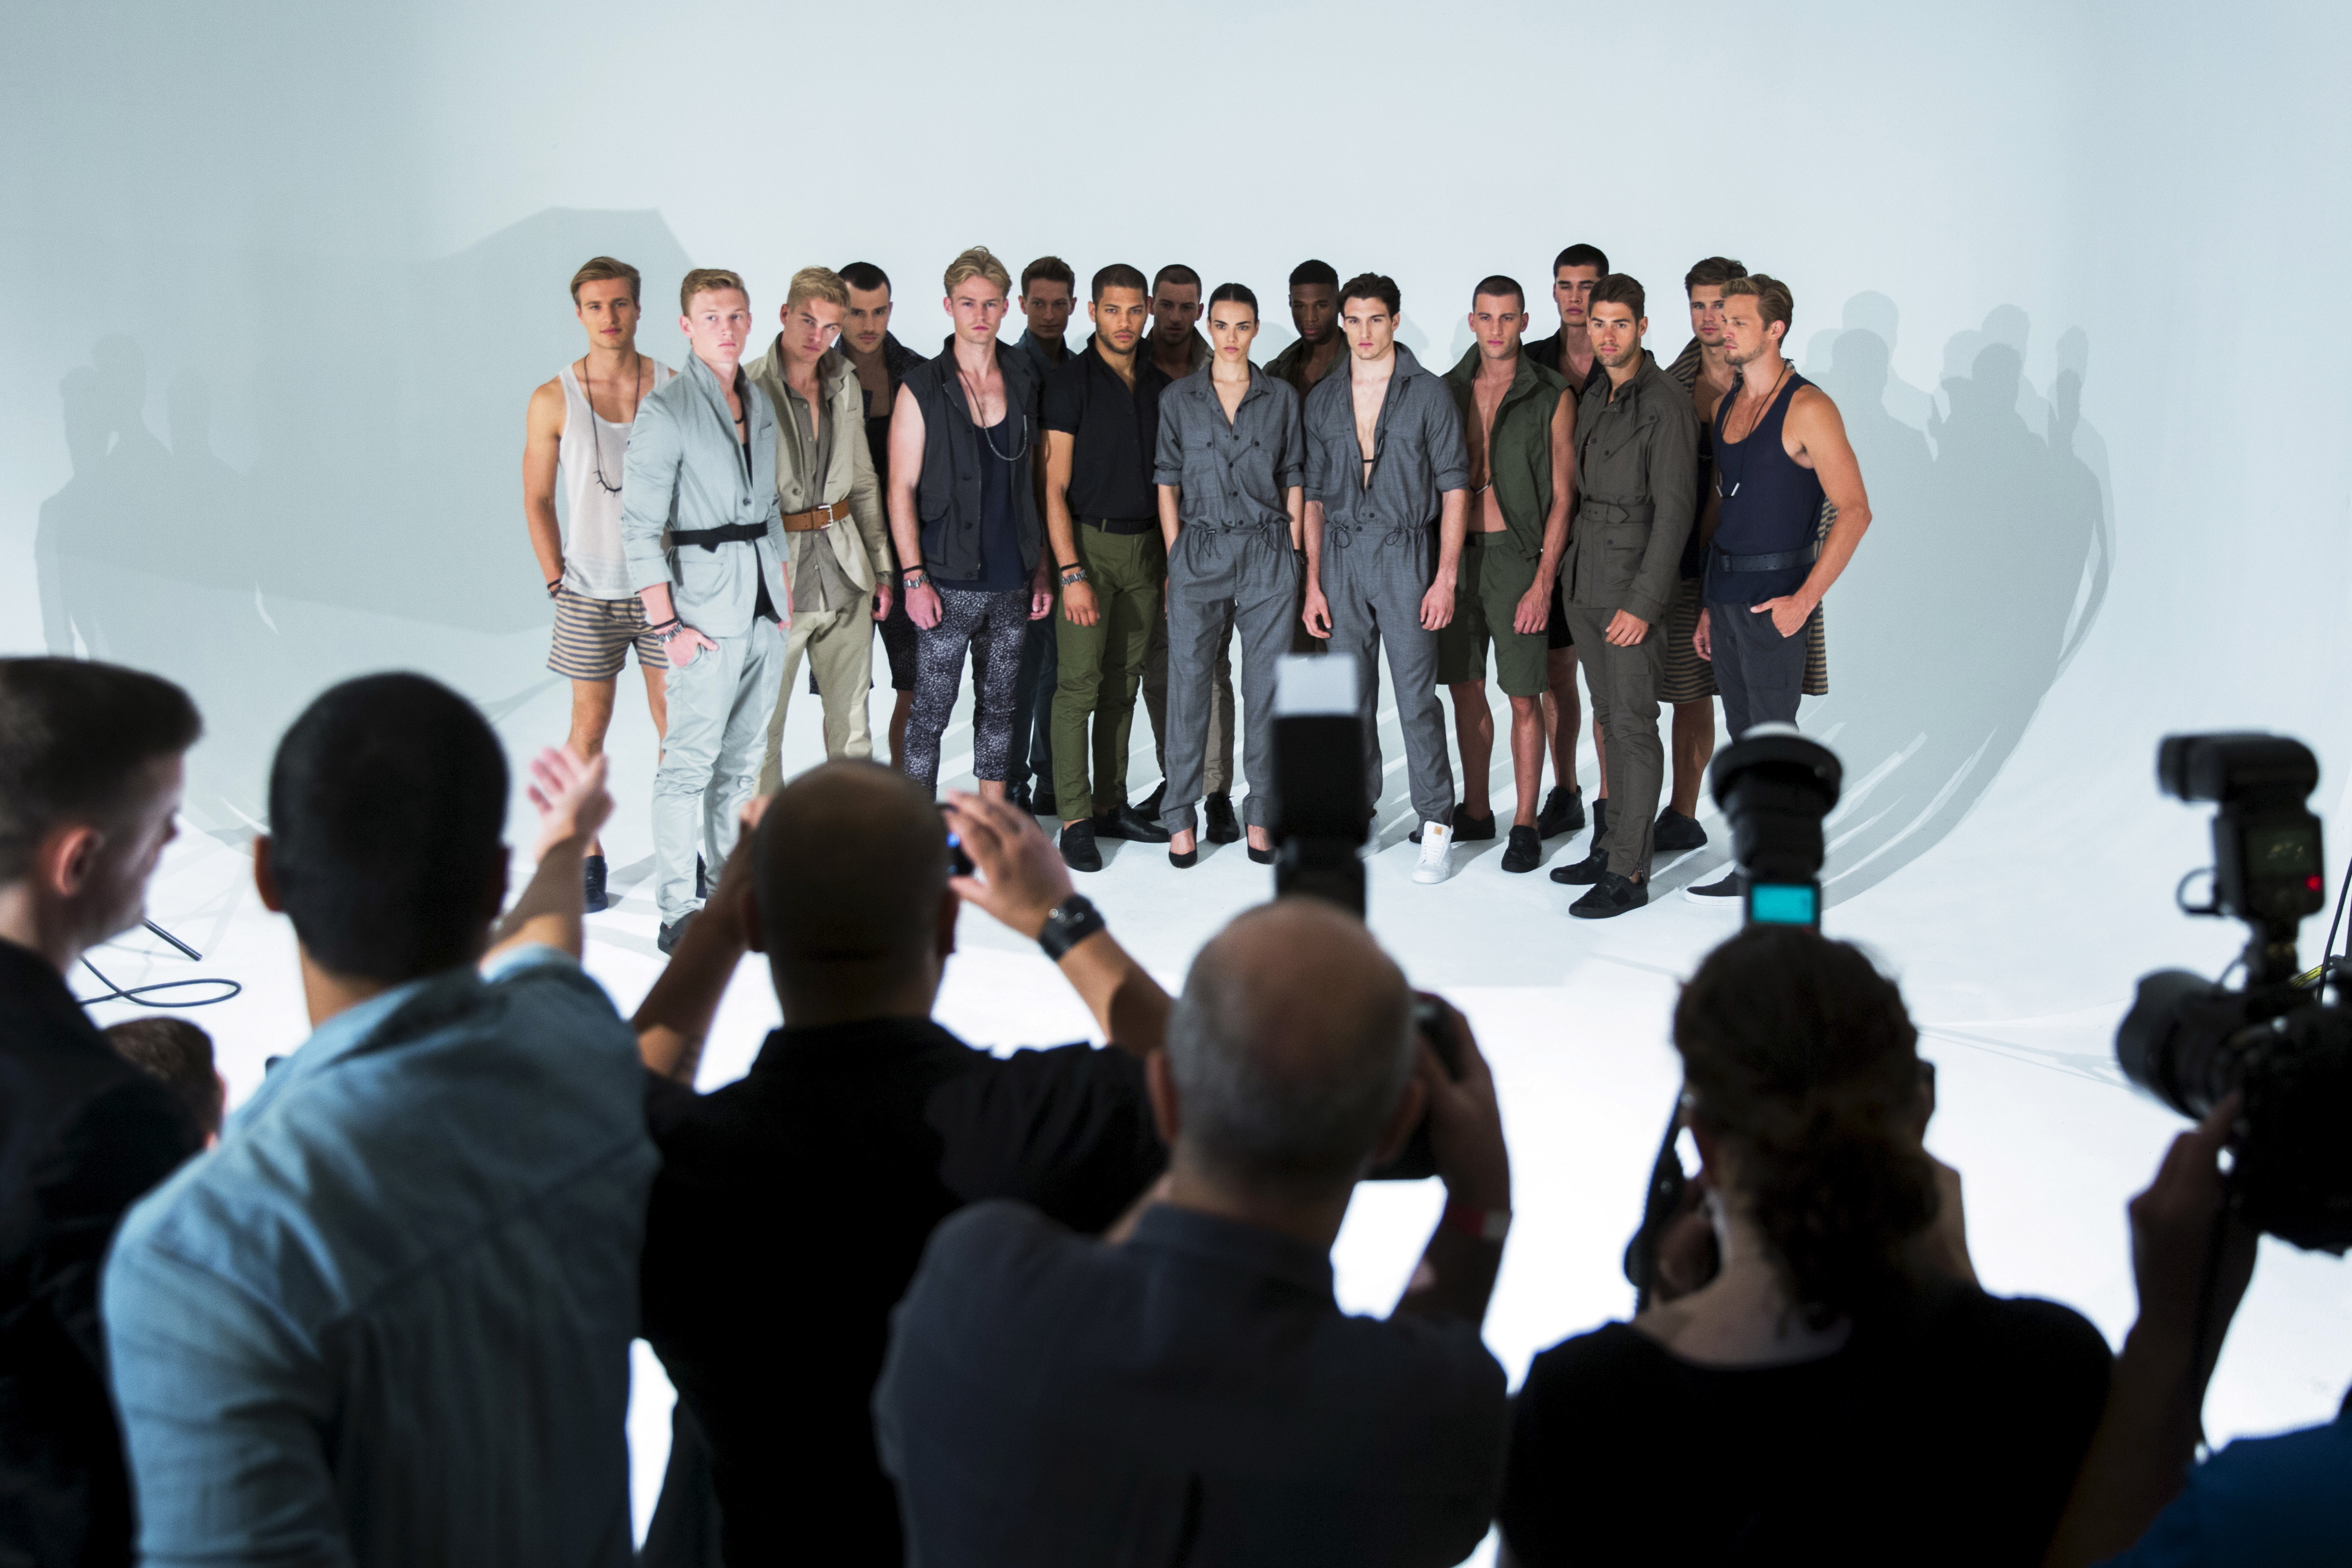 Models stand on stage for the Cadet presentation during New York Fashion Week: Men's.